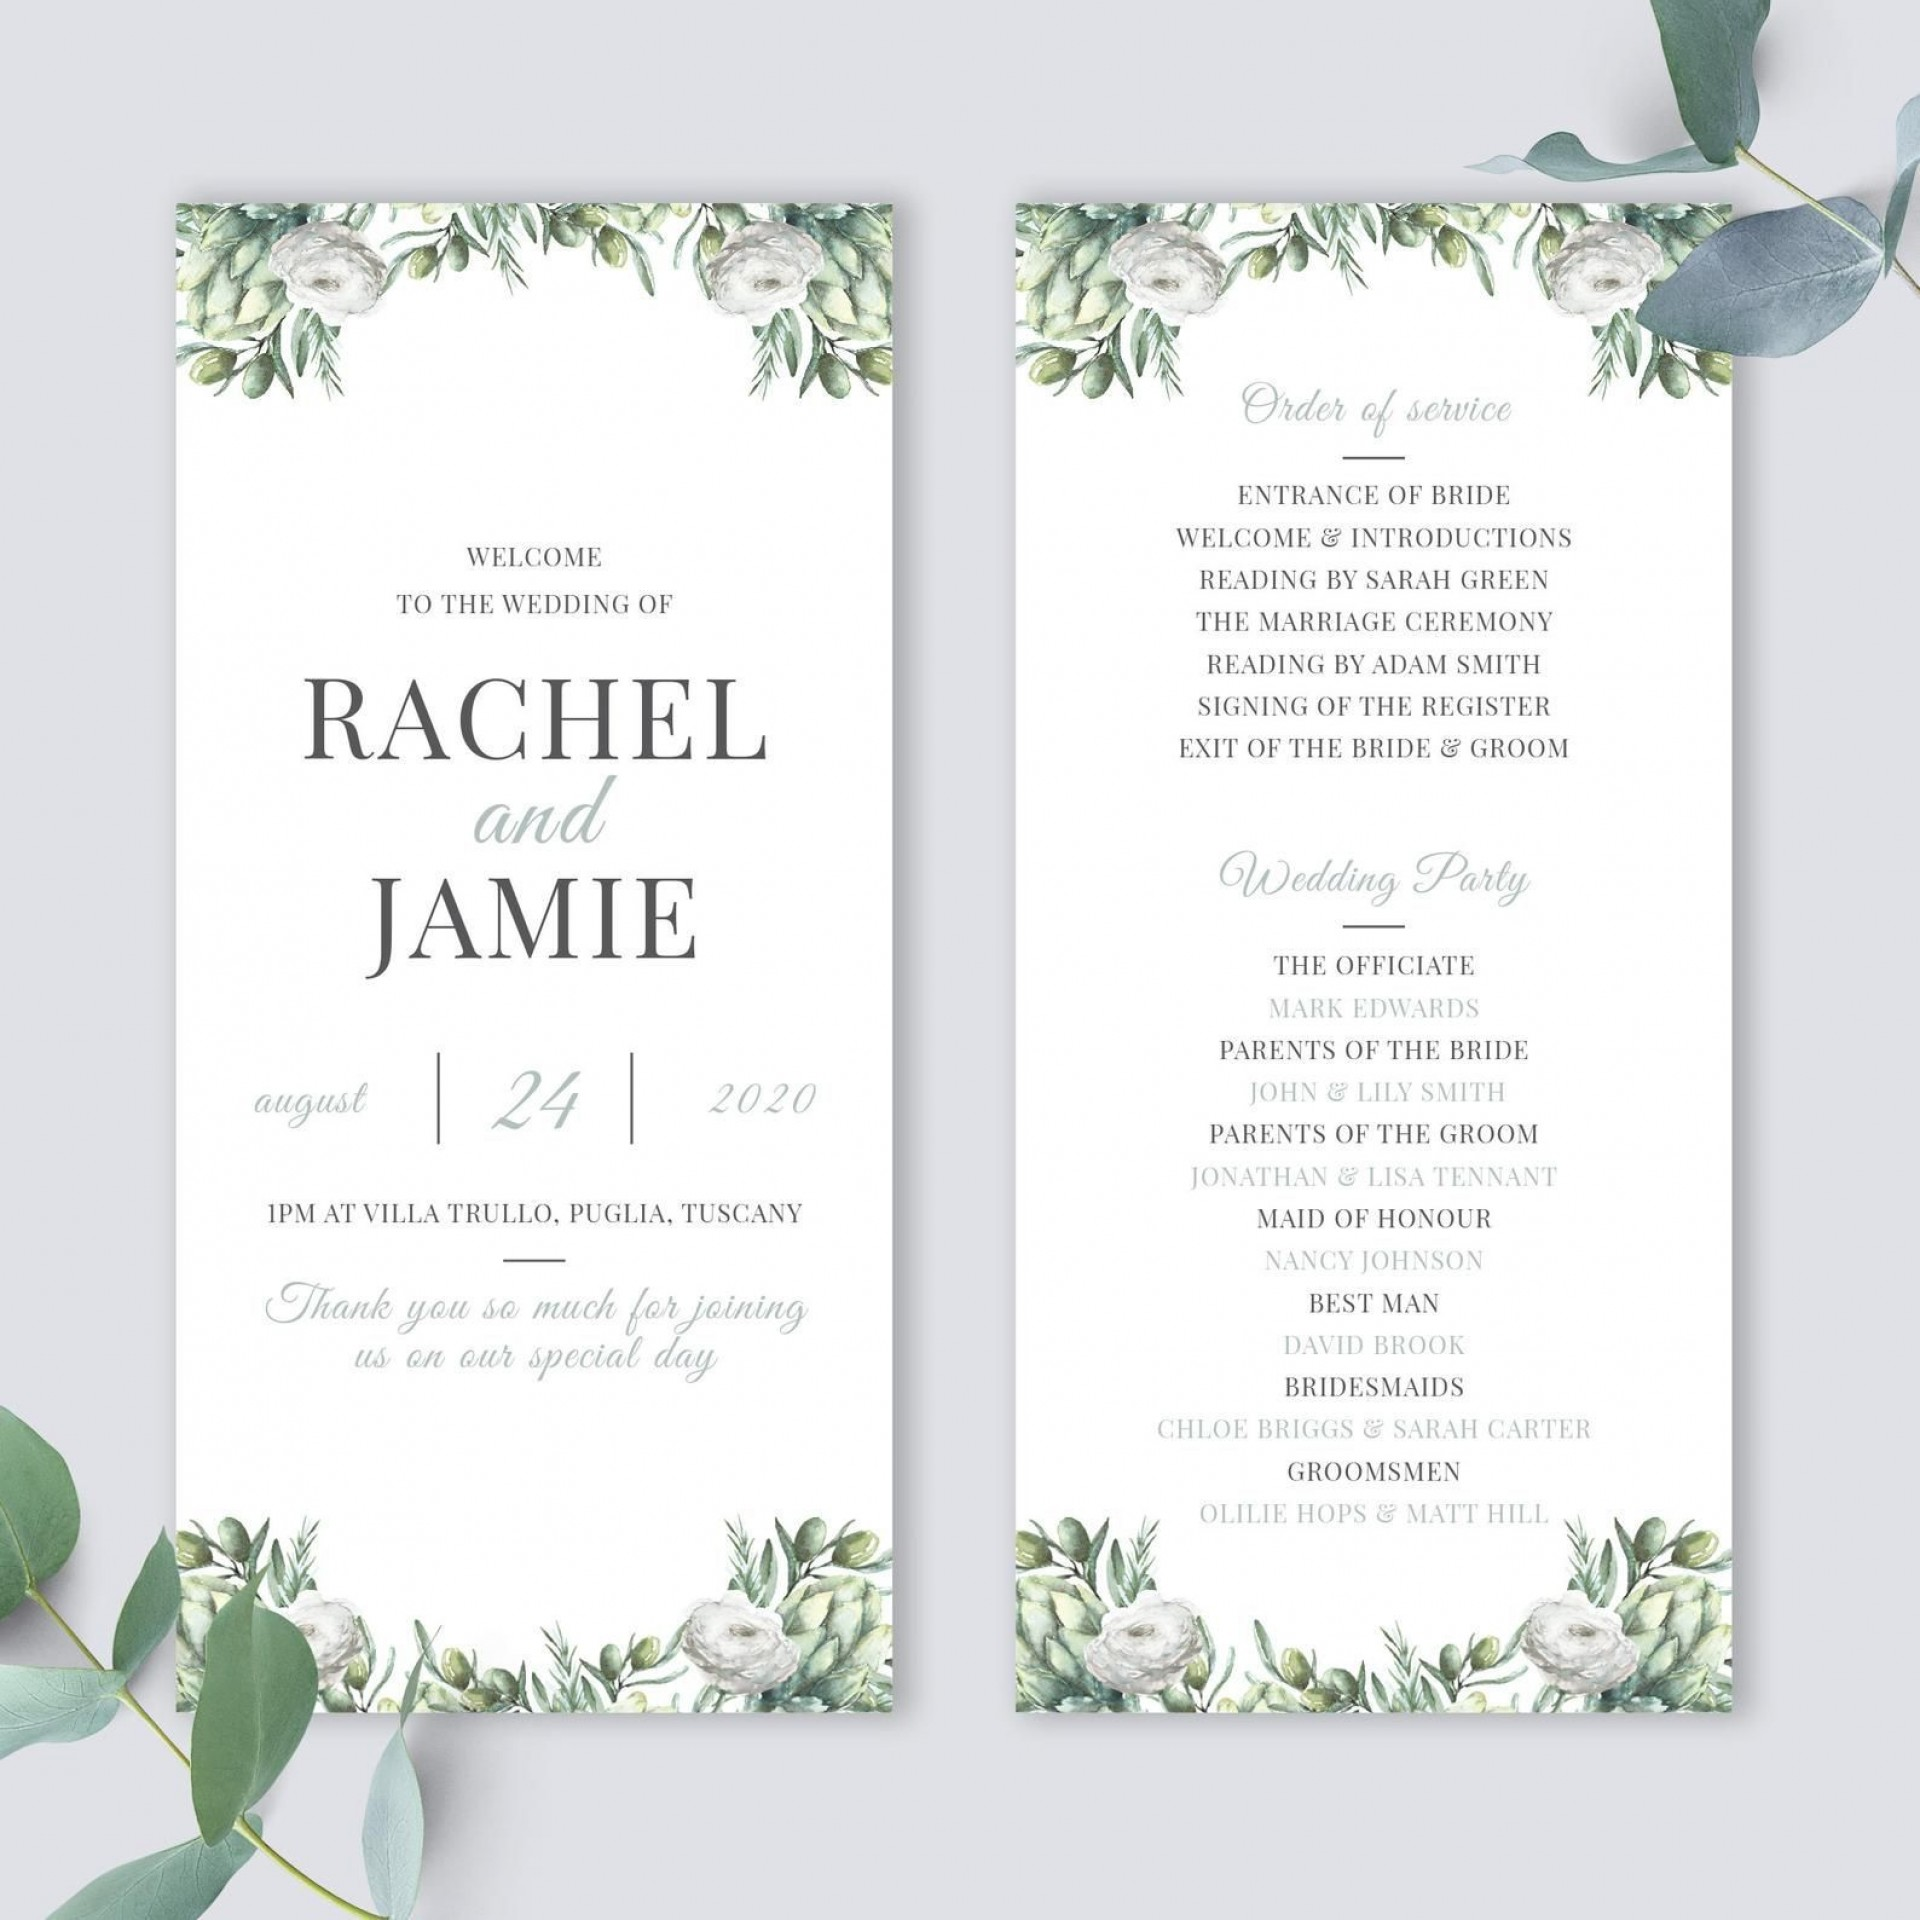 000 Simple Wedding Order Of Service Template Example  Church Free Microsoft Word Download1920